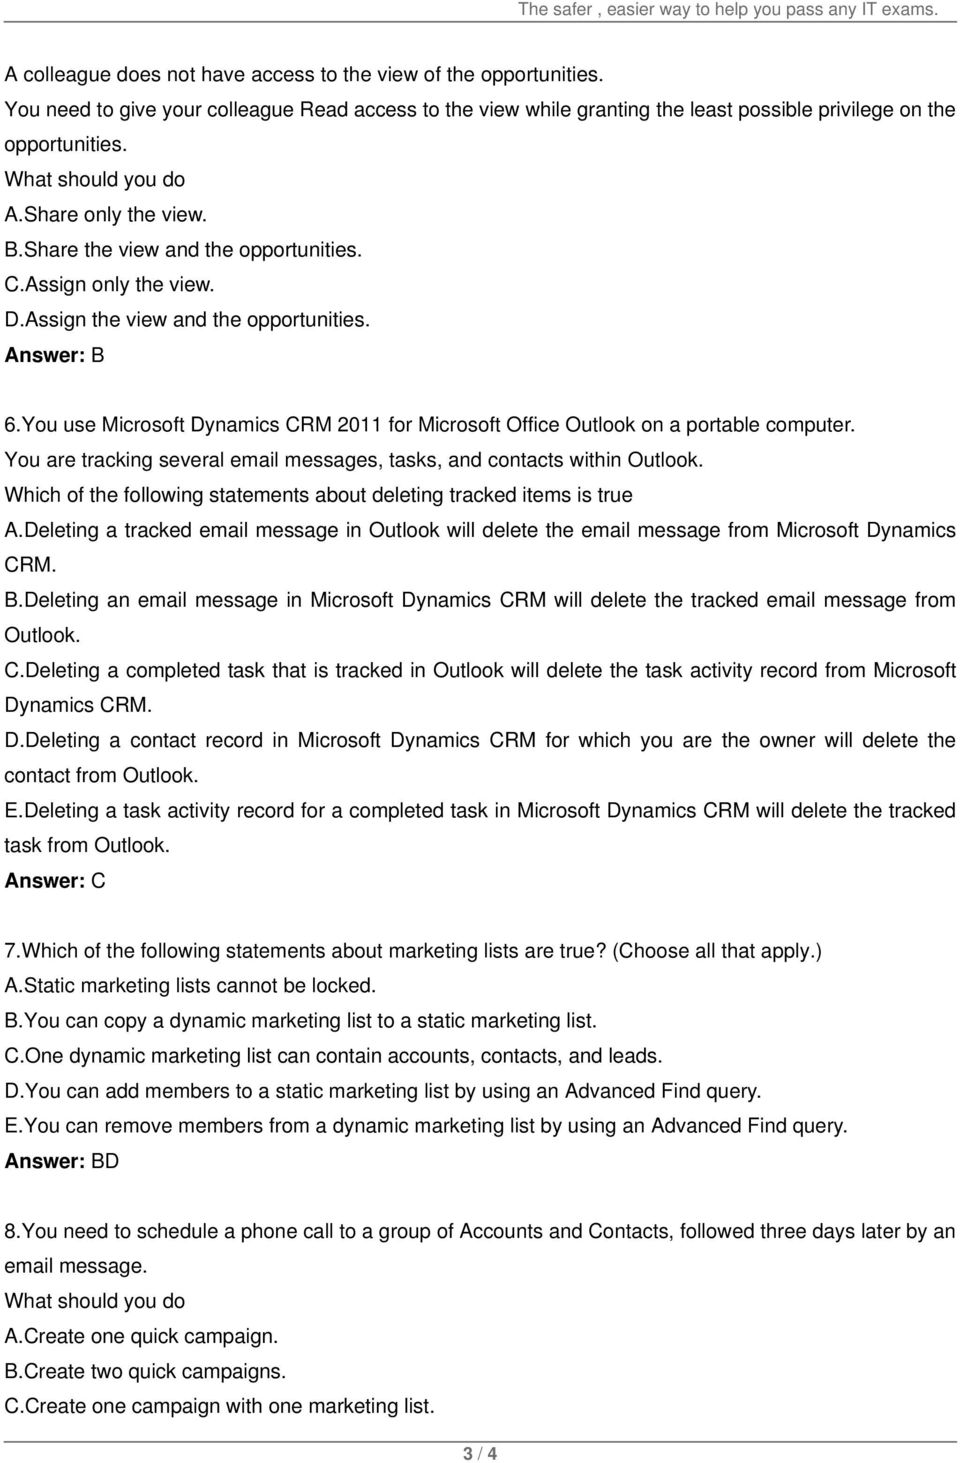 You use Microsoft Dynamics CRM 2011 for Microsoft Office Outlook on a portable computer. You are tracking several email messages, tasks, and contacts within Outlook.